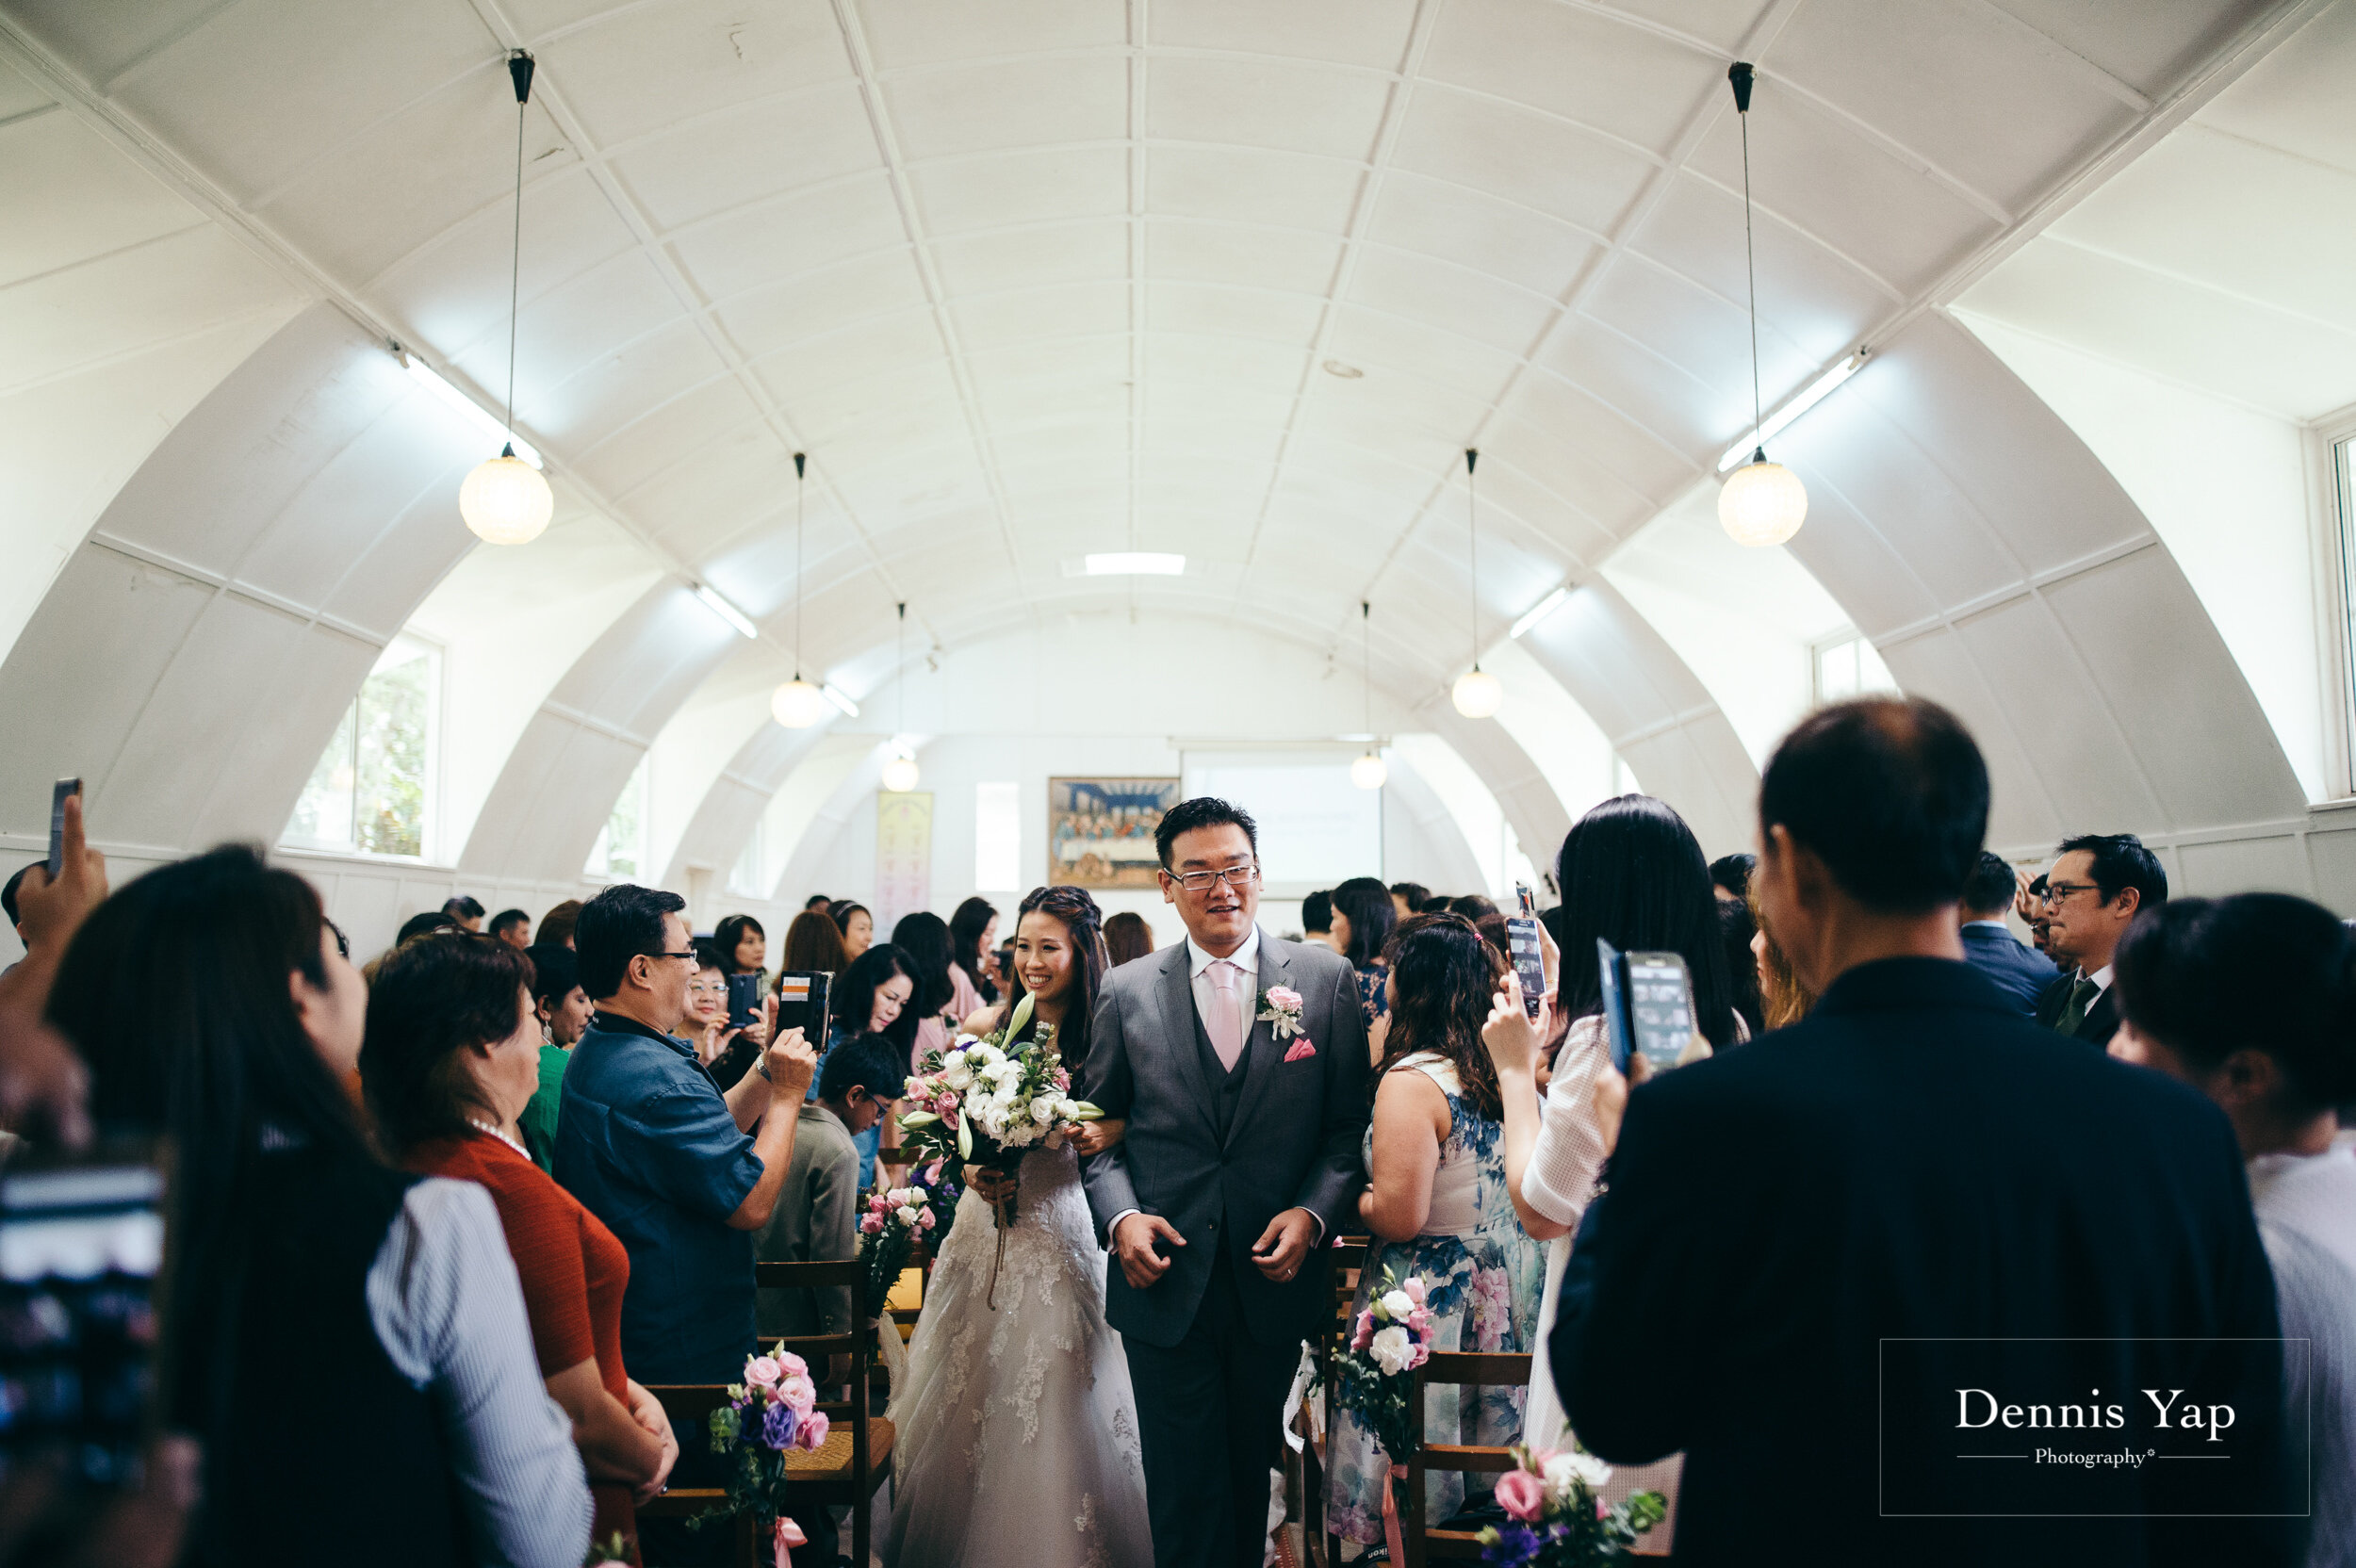 alex siowli wedding reception cameron highlands smoke house dennis yap photography malaysia traditional church wedding-126.jpg